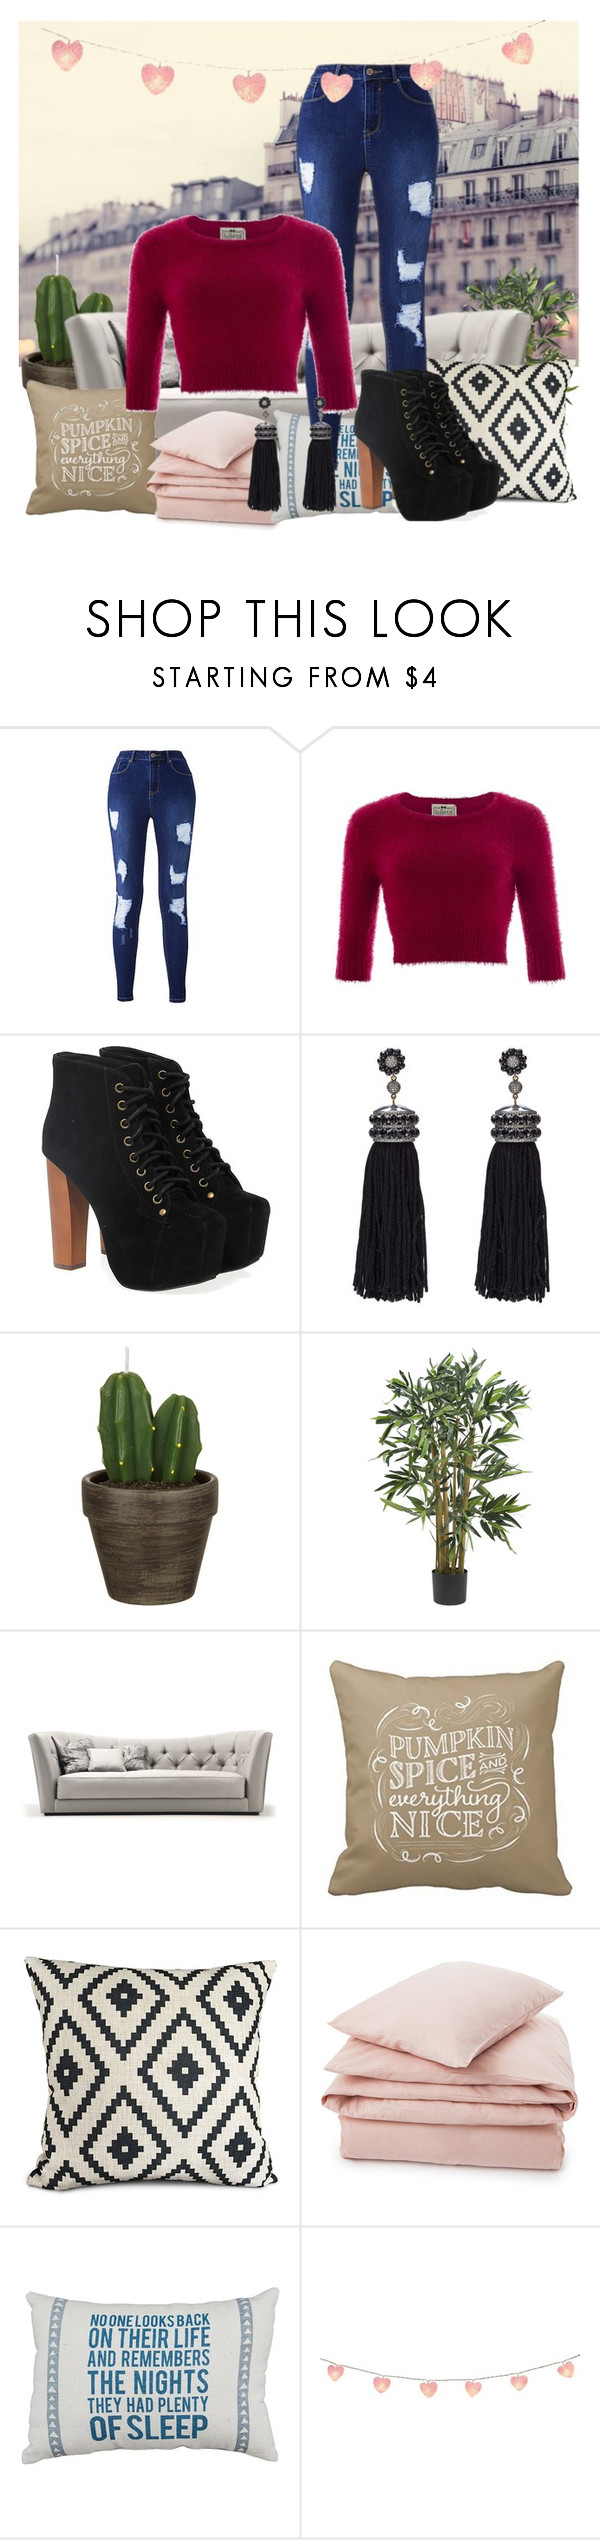 """>3>3>3"" by suada-kovacevic ❤ liked on Polyvore featuring Collectif, Jeffrey Campbell, Nush, John Lewis and Lexington"